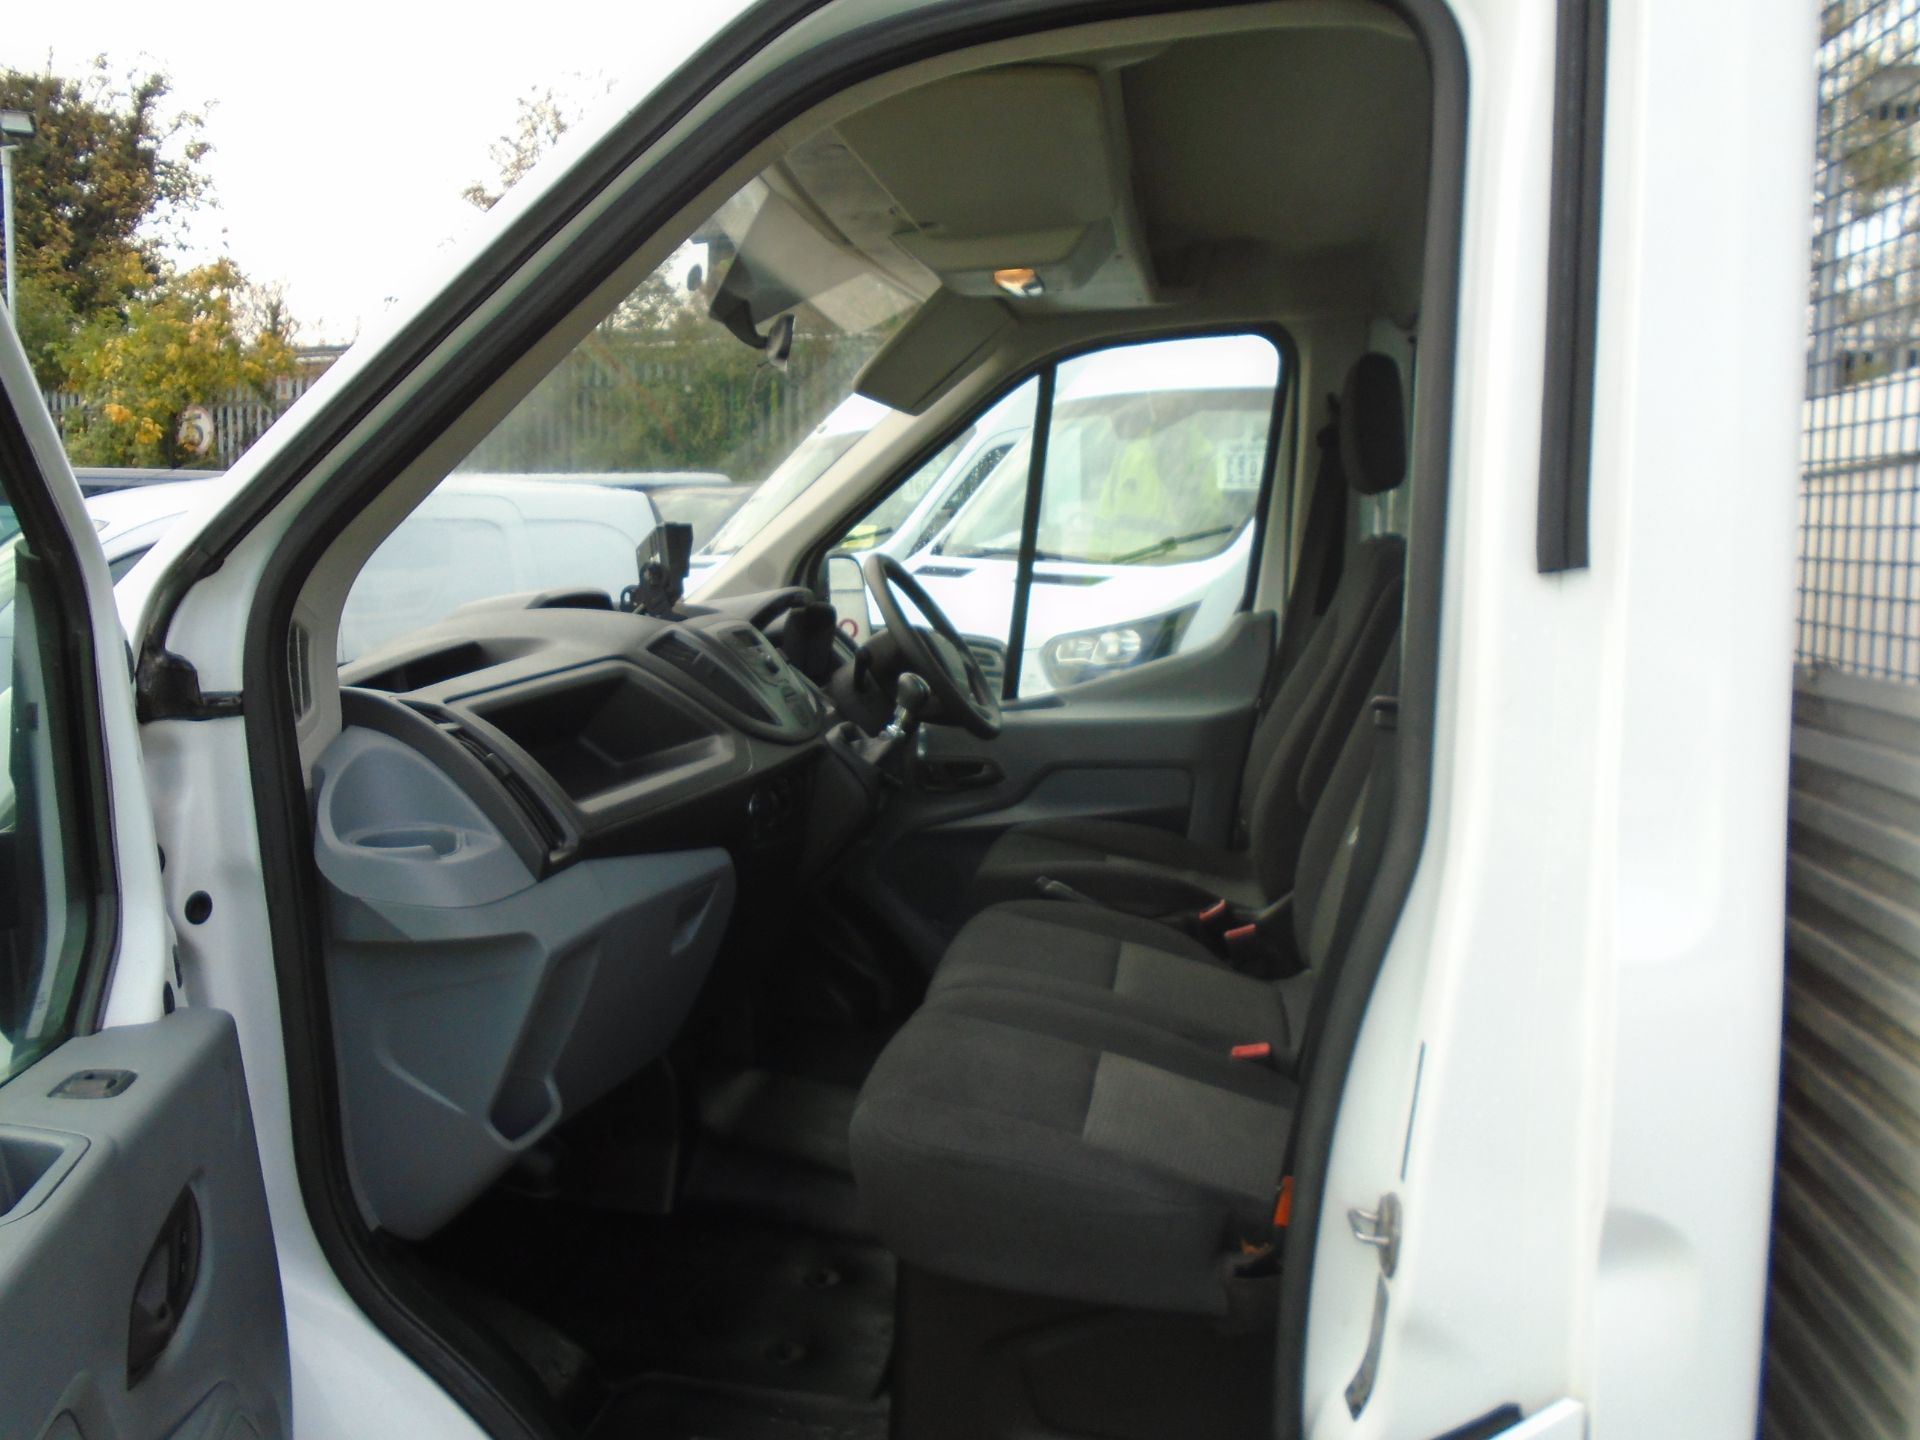 2016 Ford Transit 2.2 Tdci 125Ps Chassis Cab (FL66FCA) Image 15